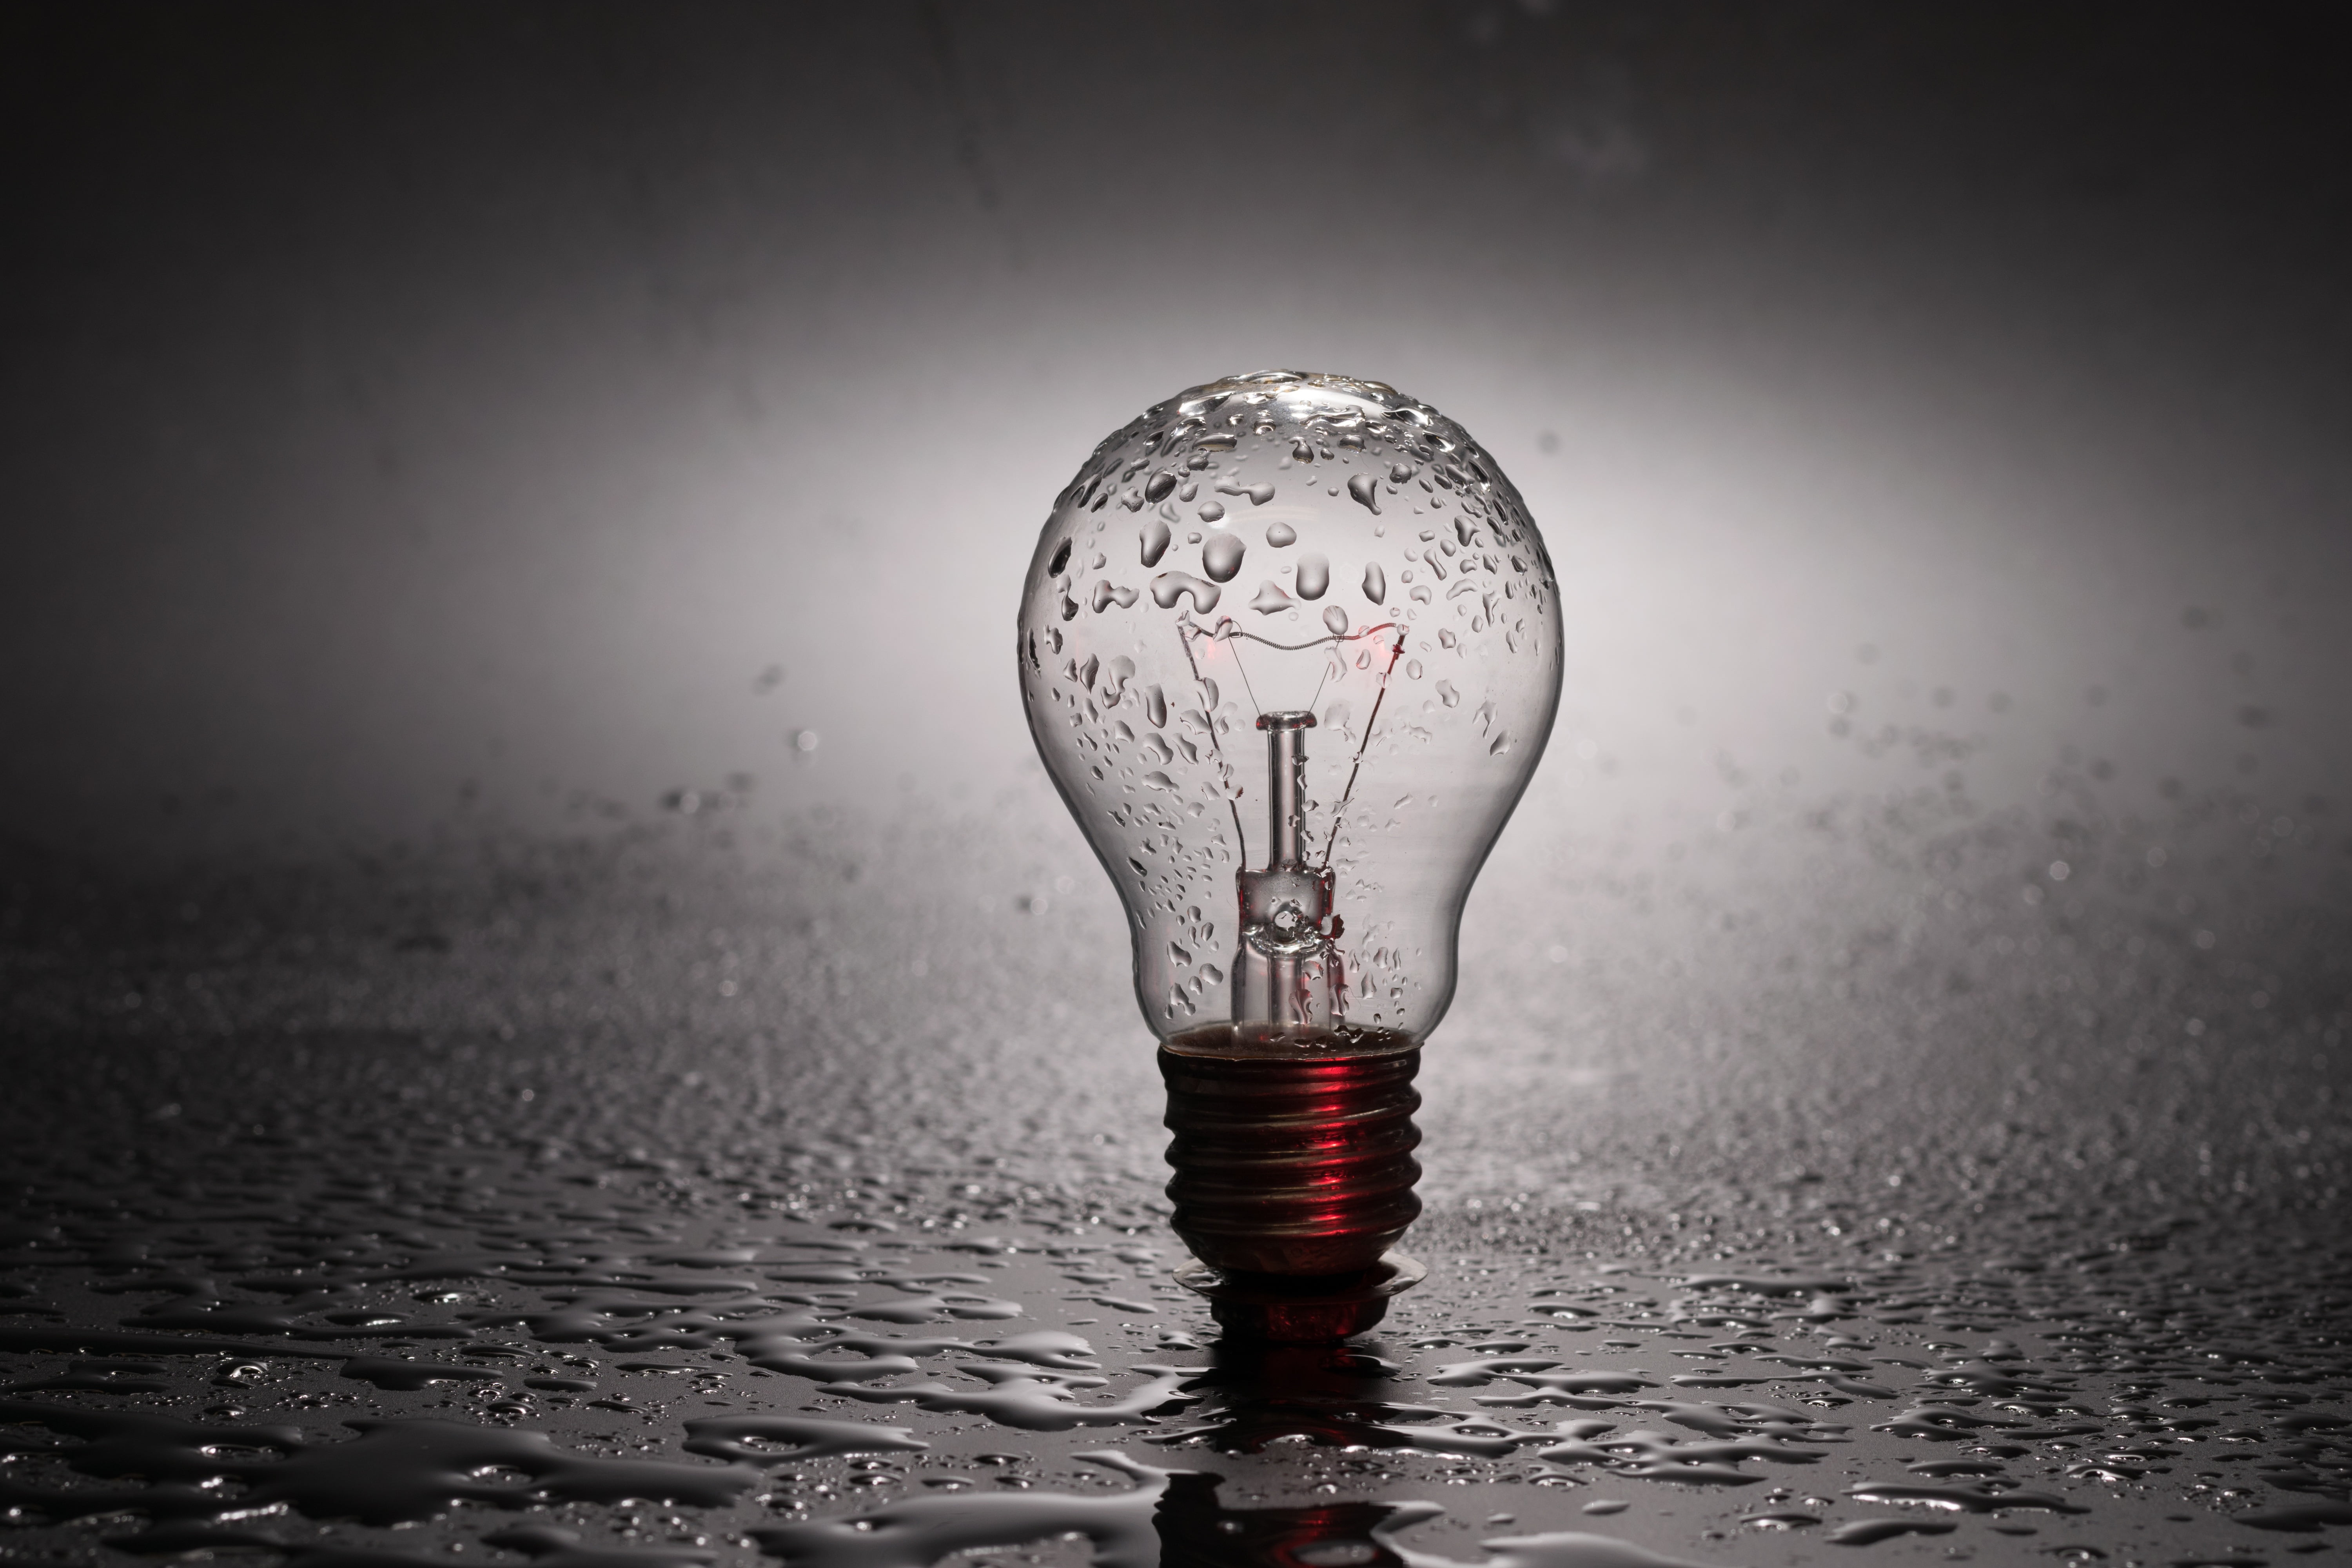 Incandescent bulb with droplets HD wallpaper Wallpaper Flare 6000x4000